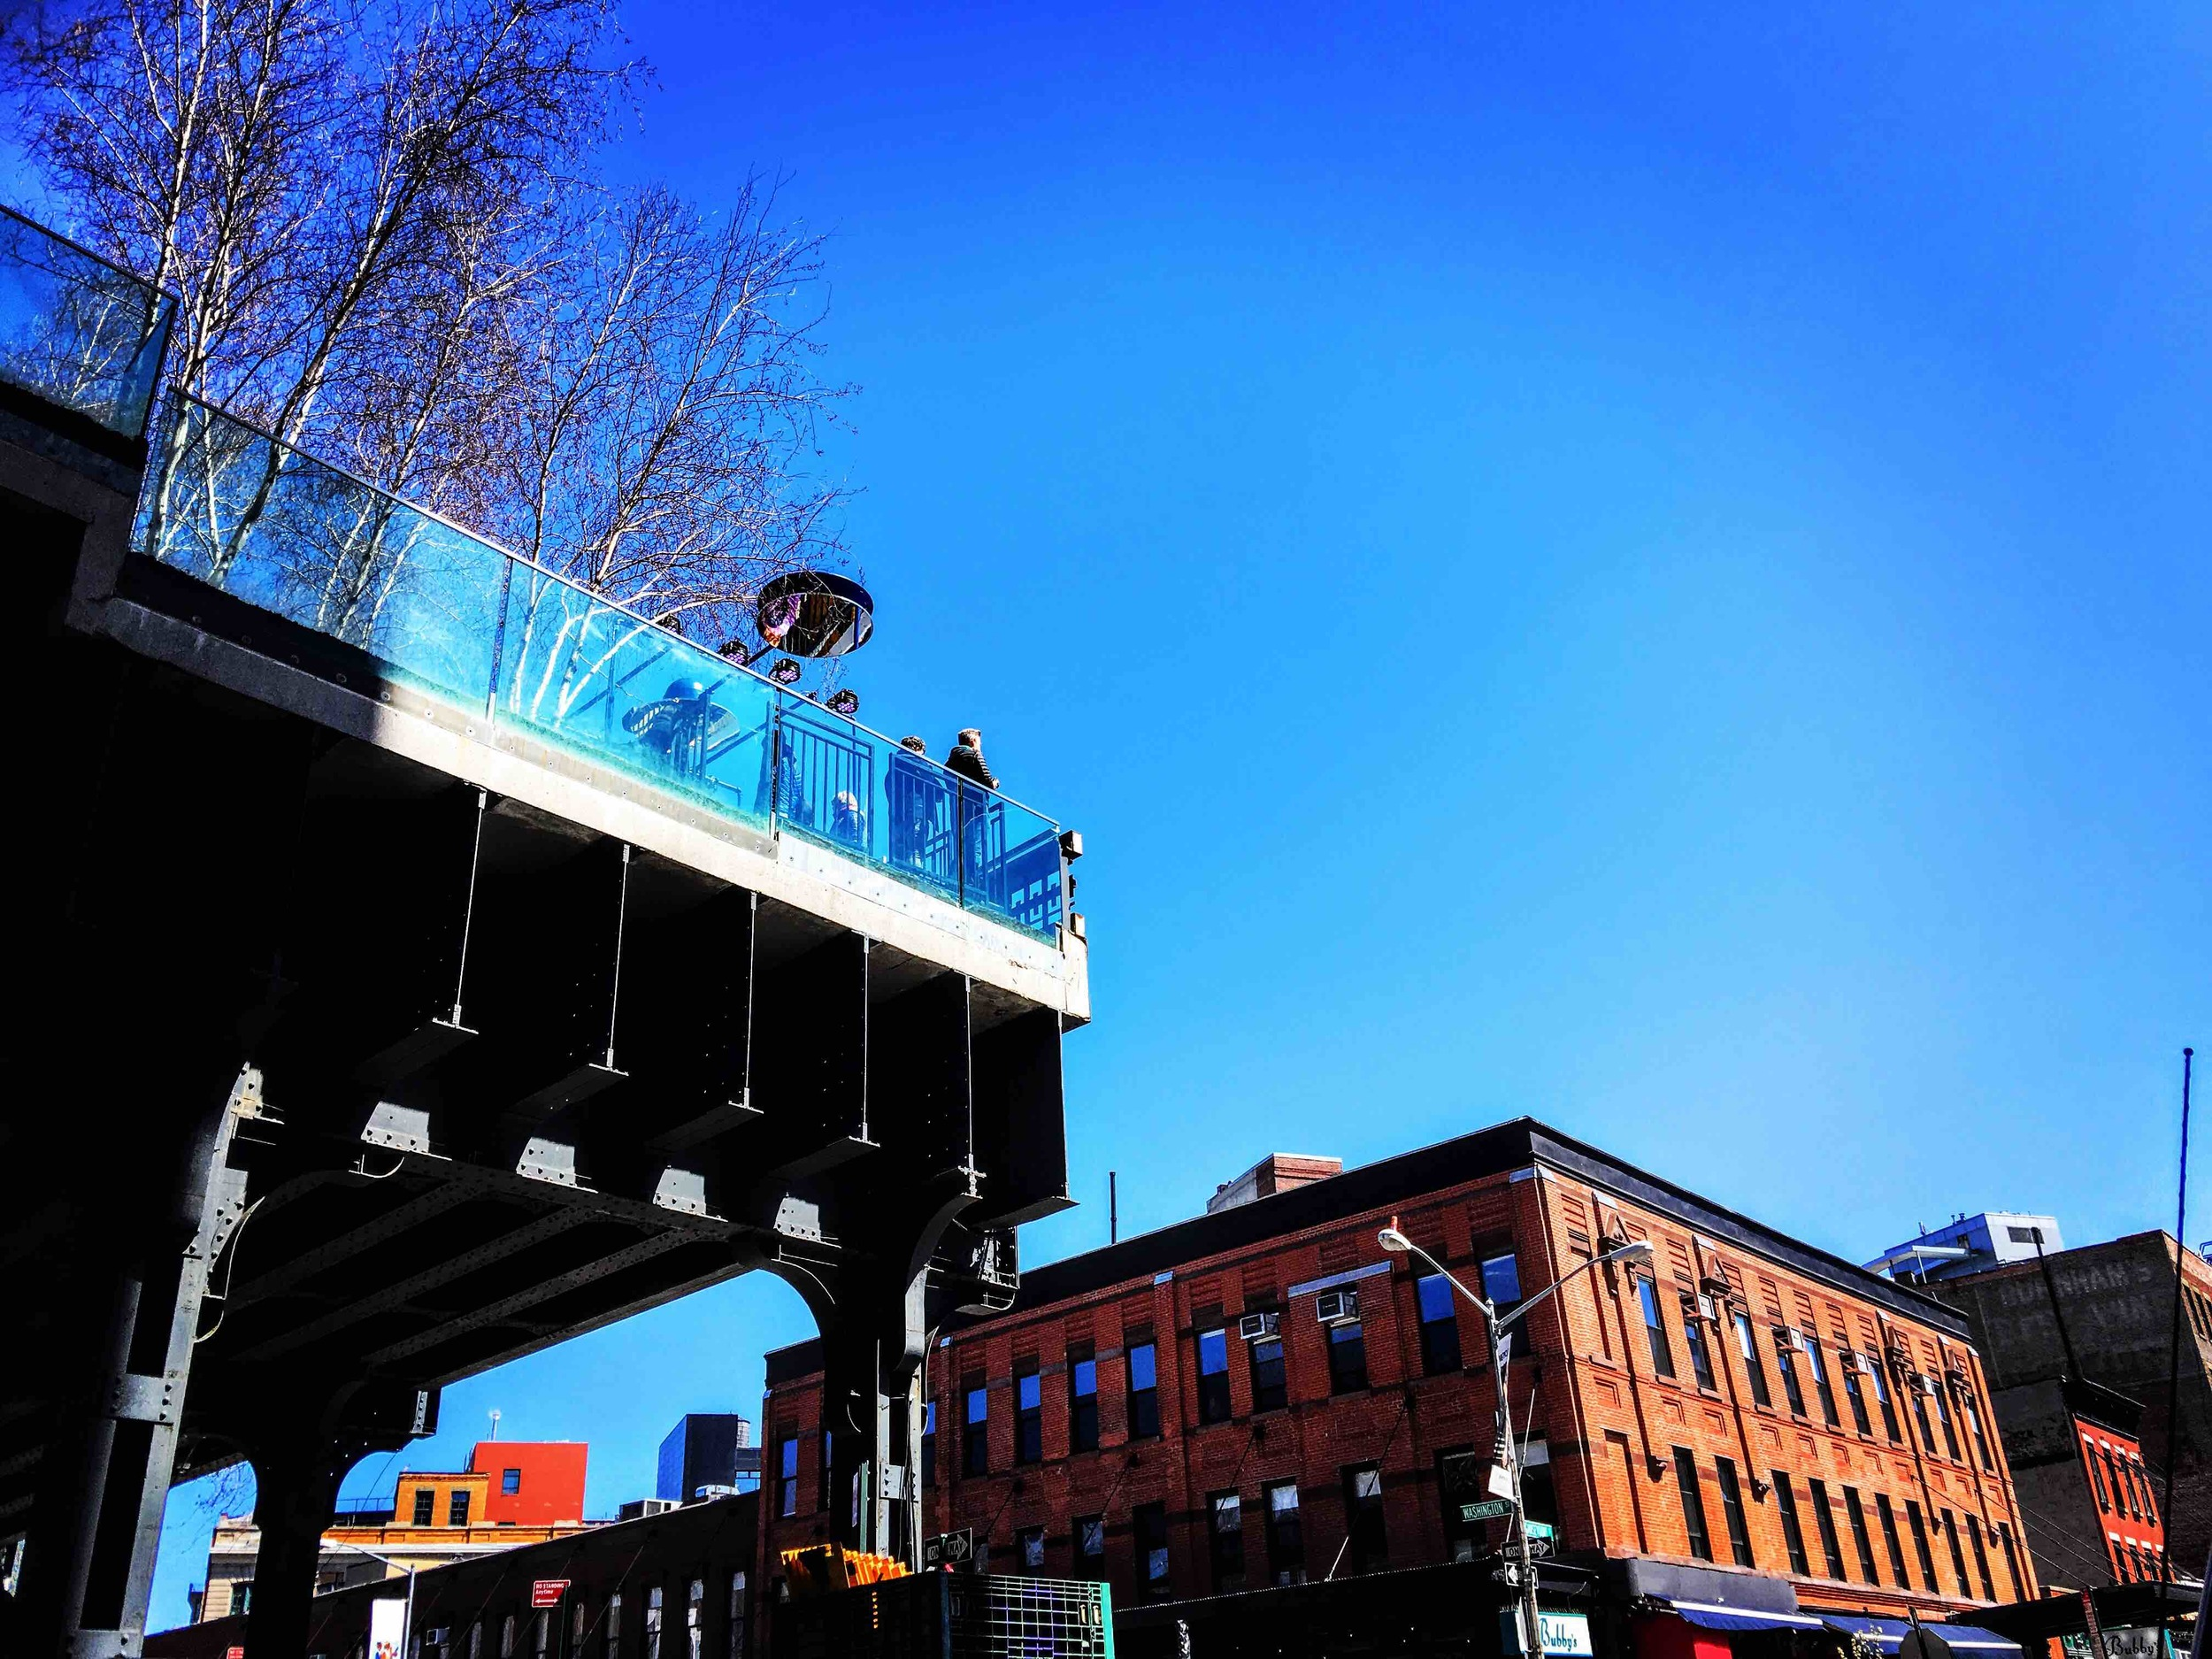 The High Line begins in the Meatpacking District on 12th Street